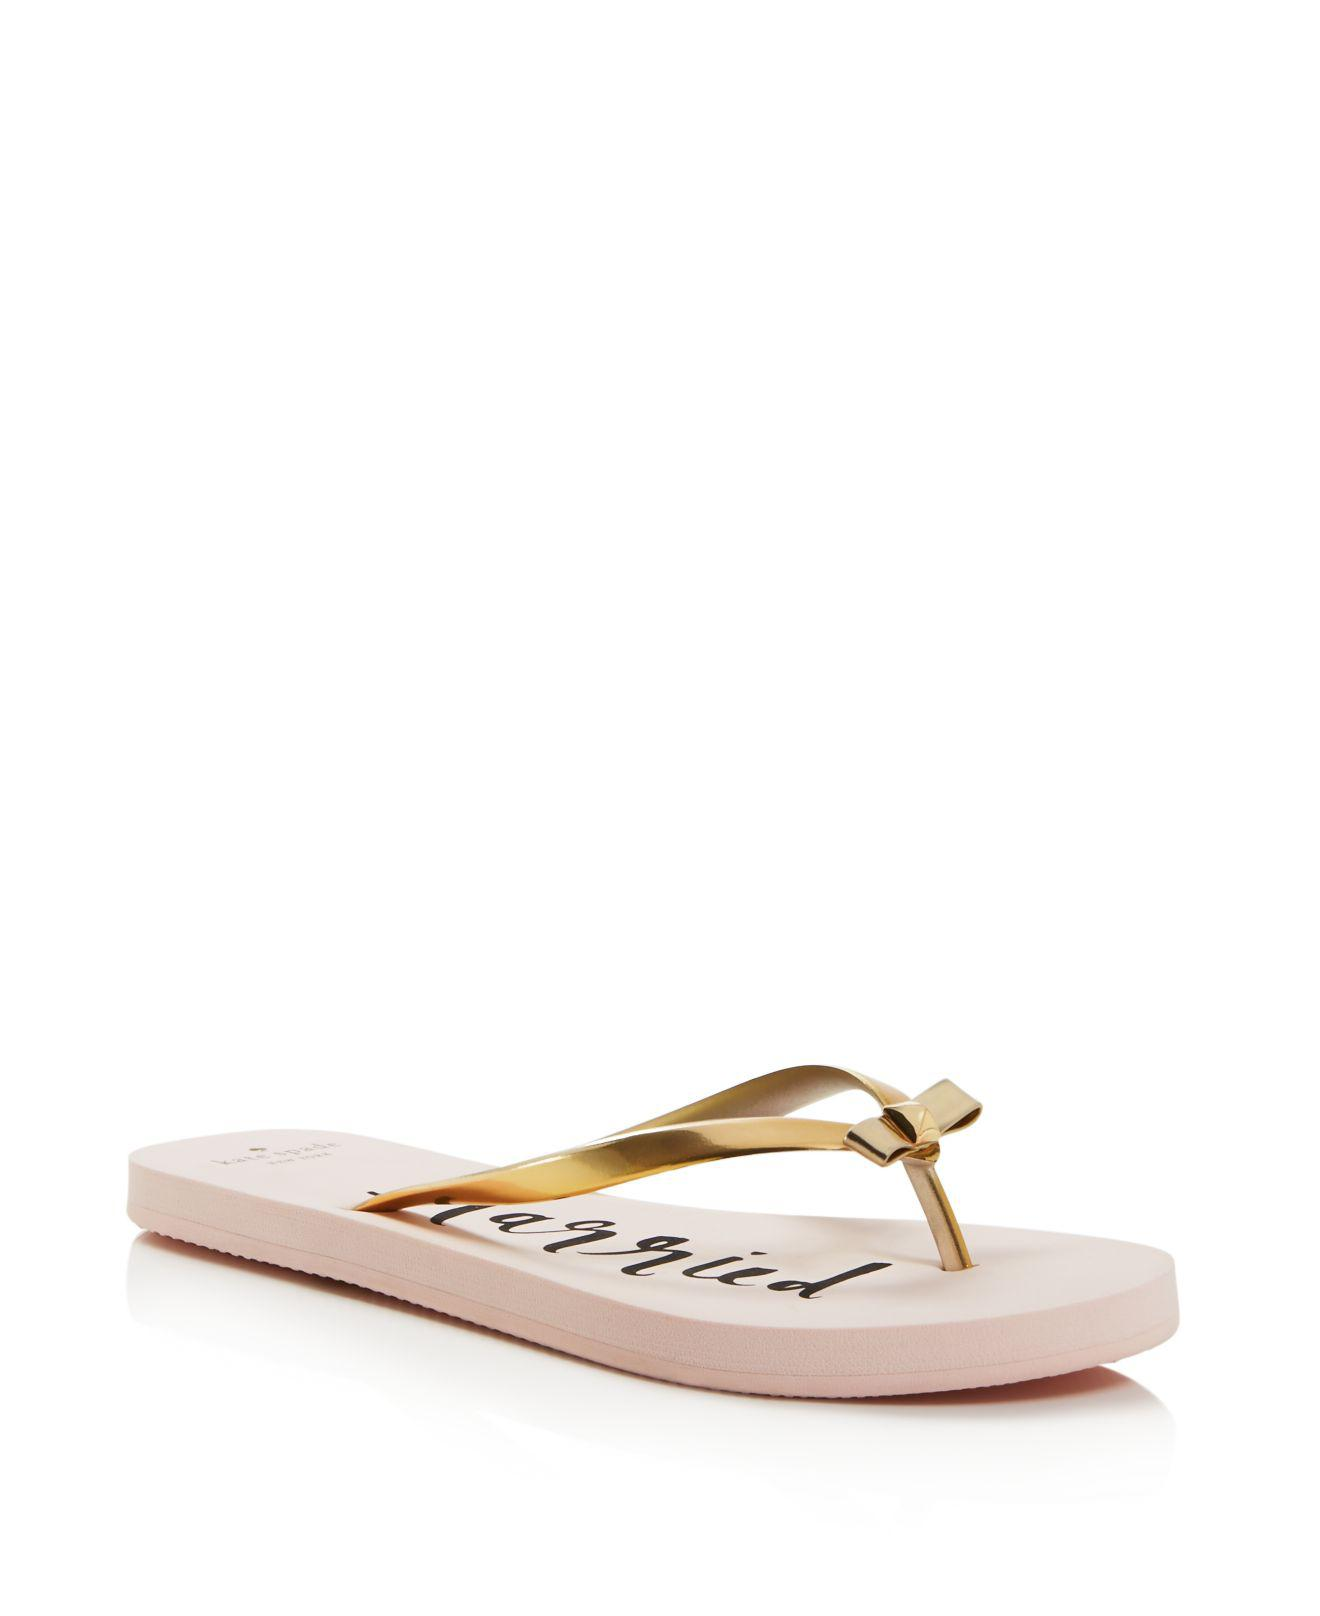 4ab6b64e9 Lyst - Kate Spade Nadine Just Married Flip-flops in Pink